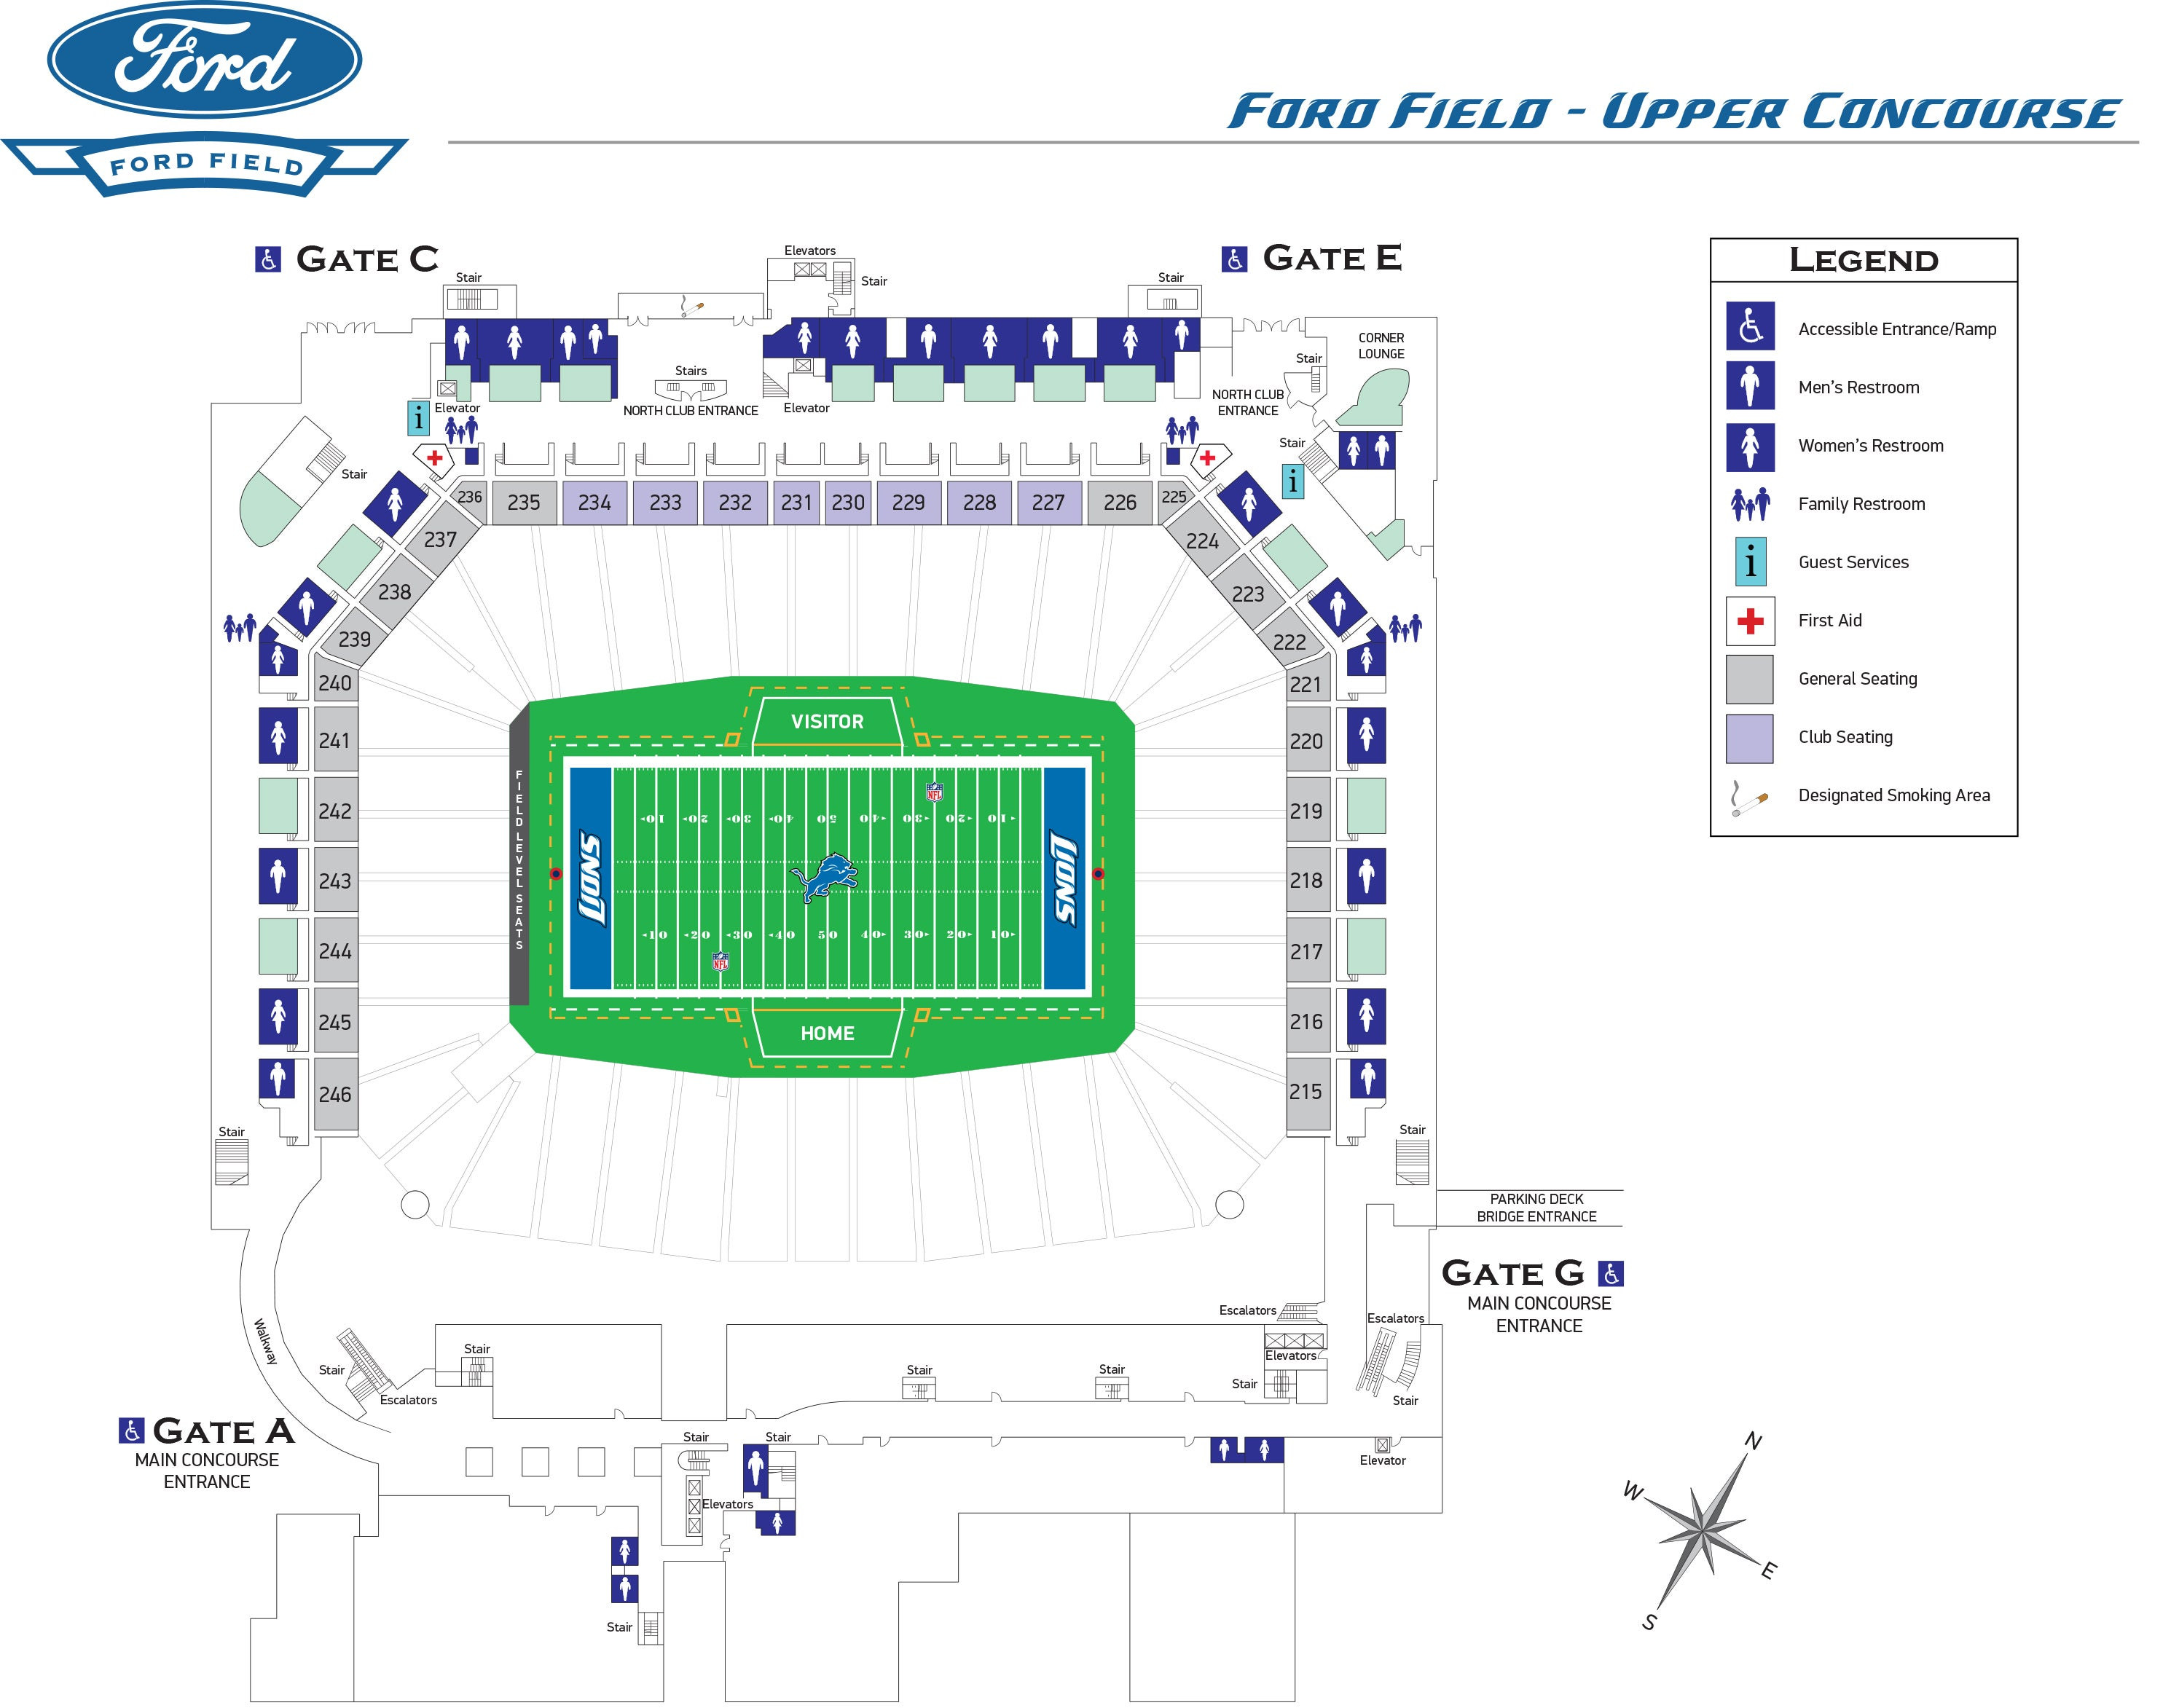 Ford-Field---Upper-Concourse-large-101316.jpg